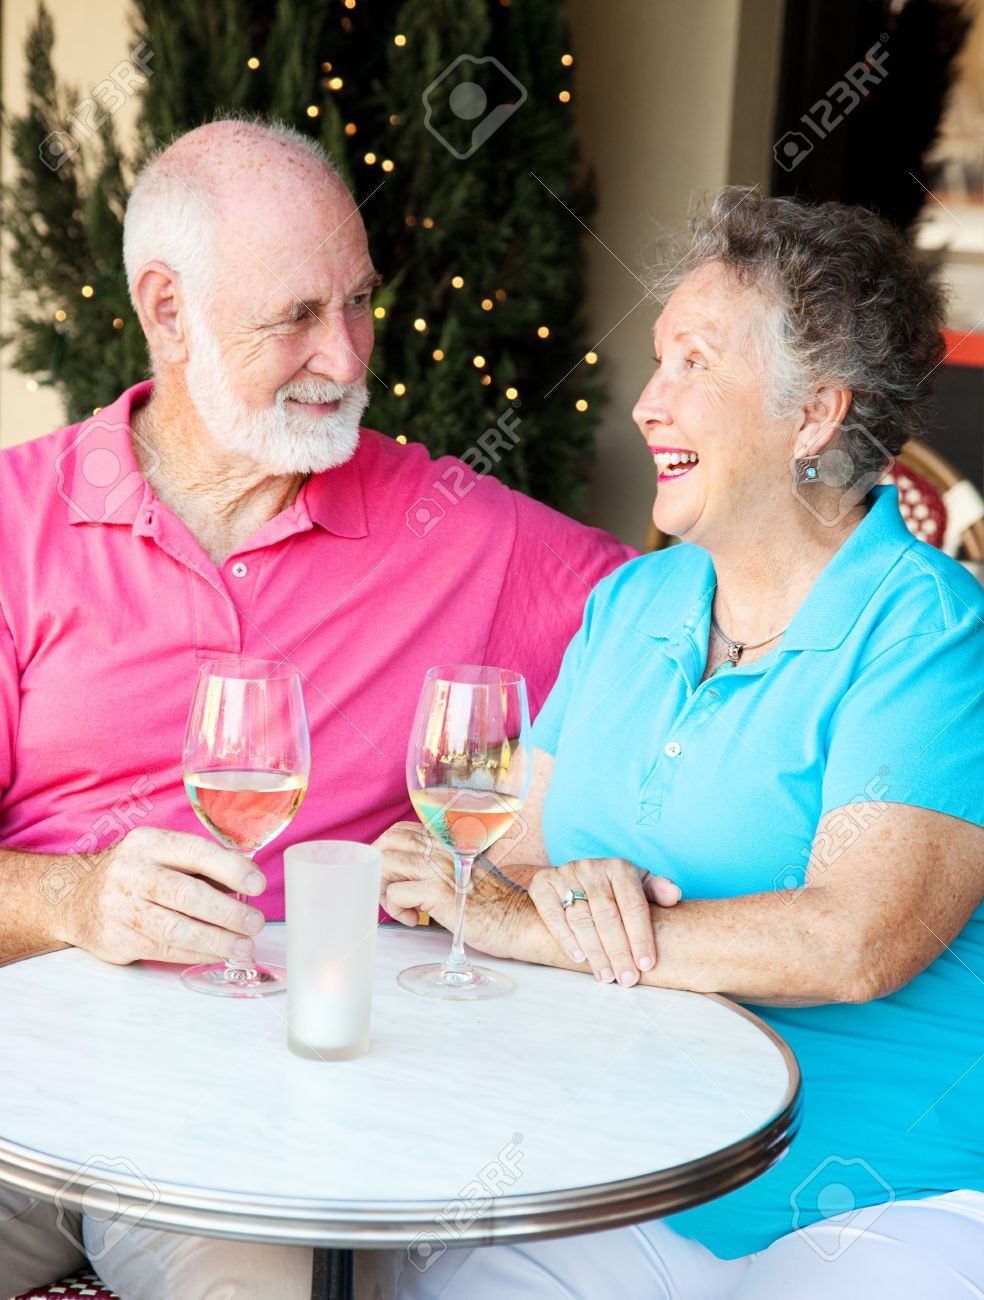 Senior couple enjoying a glass of wine and conversation at an outdoor cafe. Stock Photo - 14778816